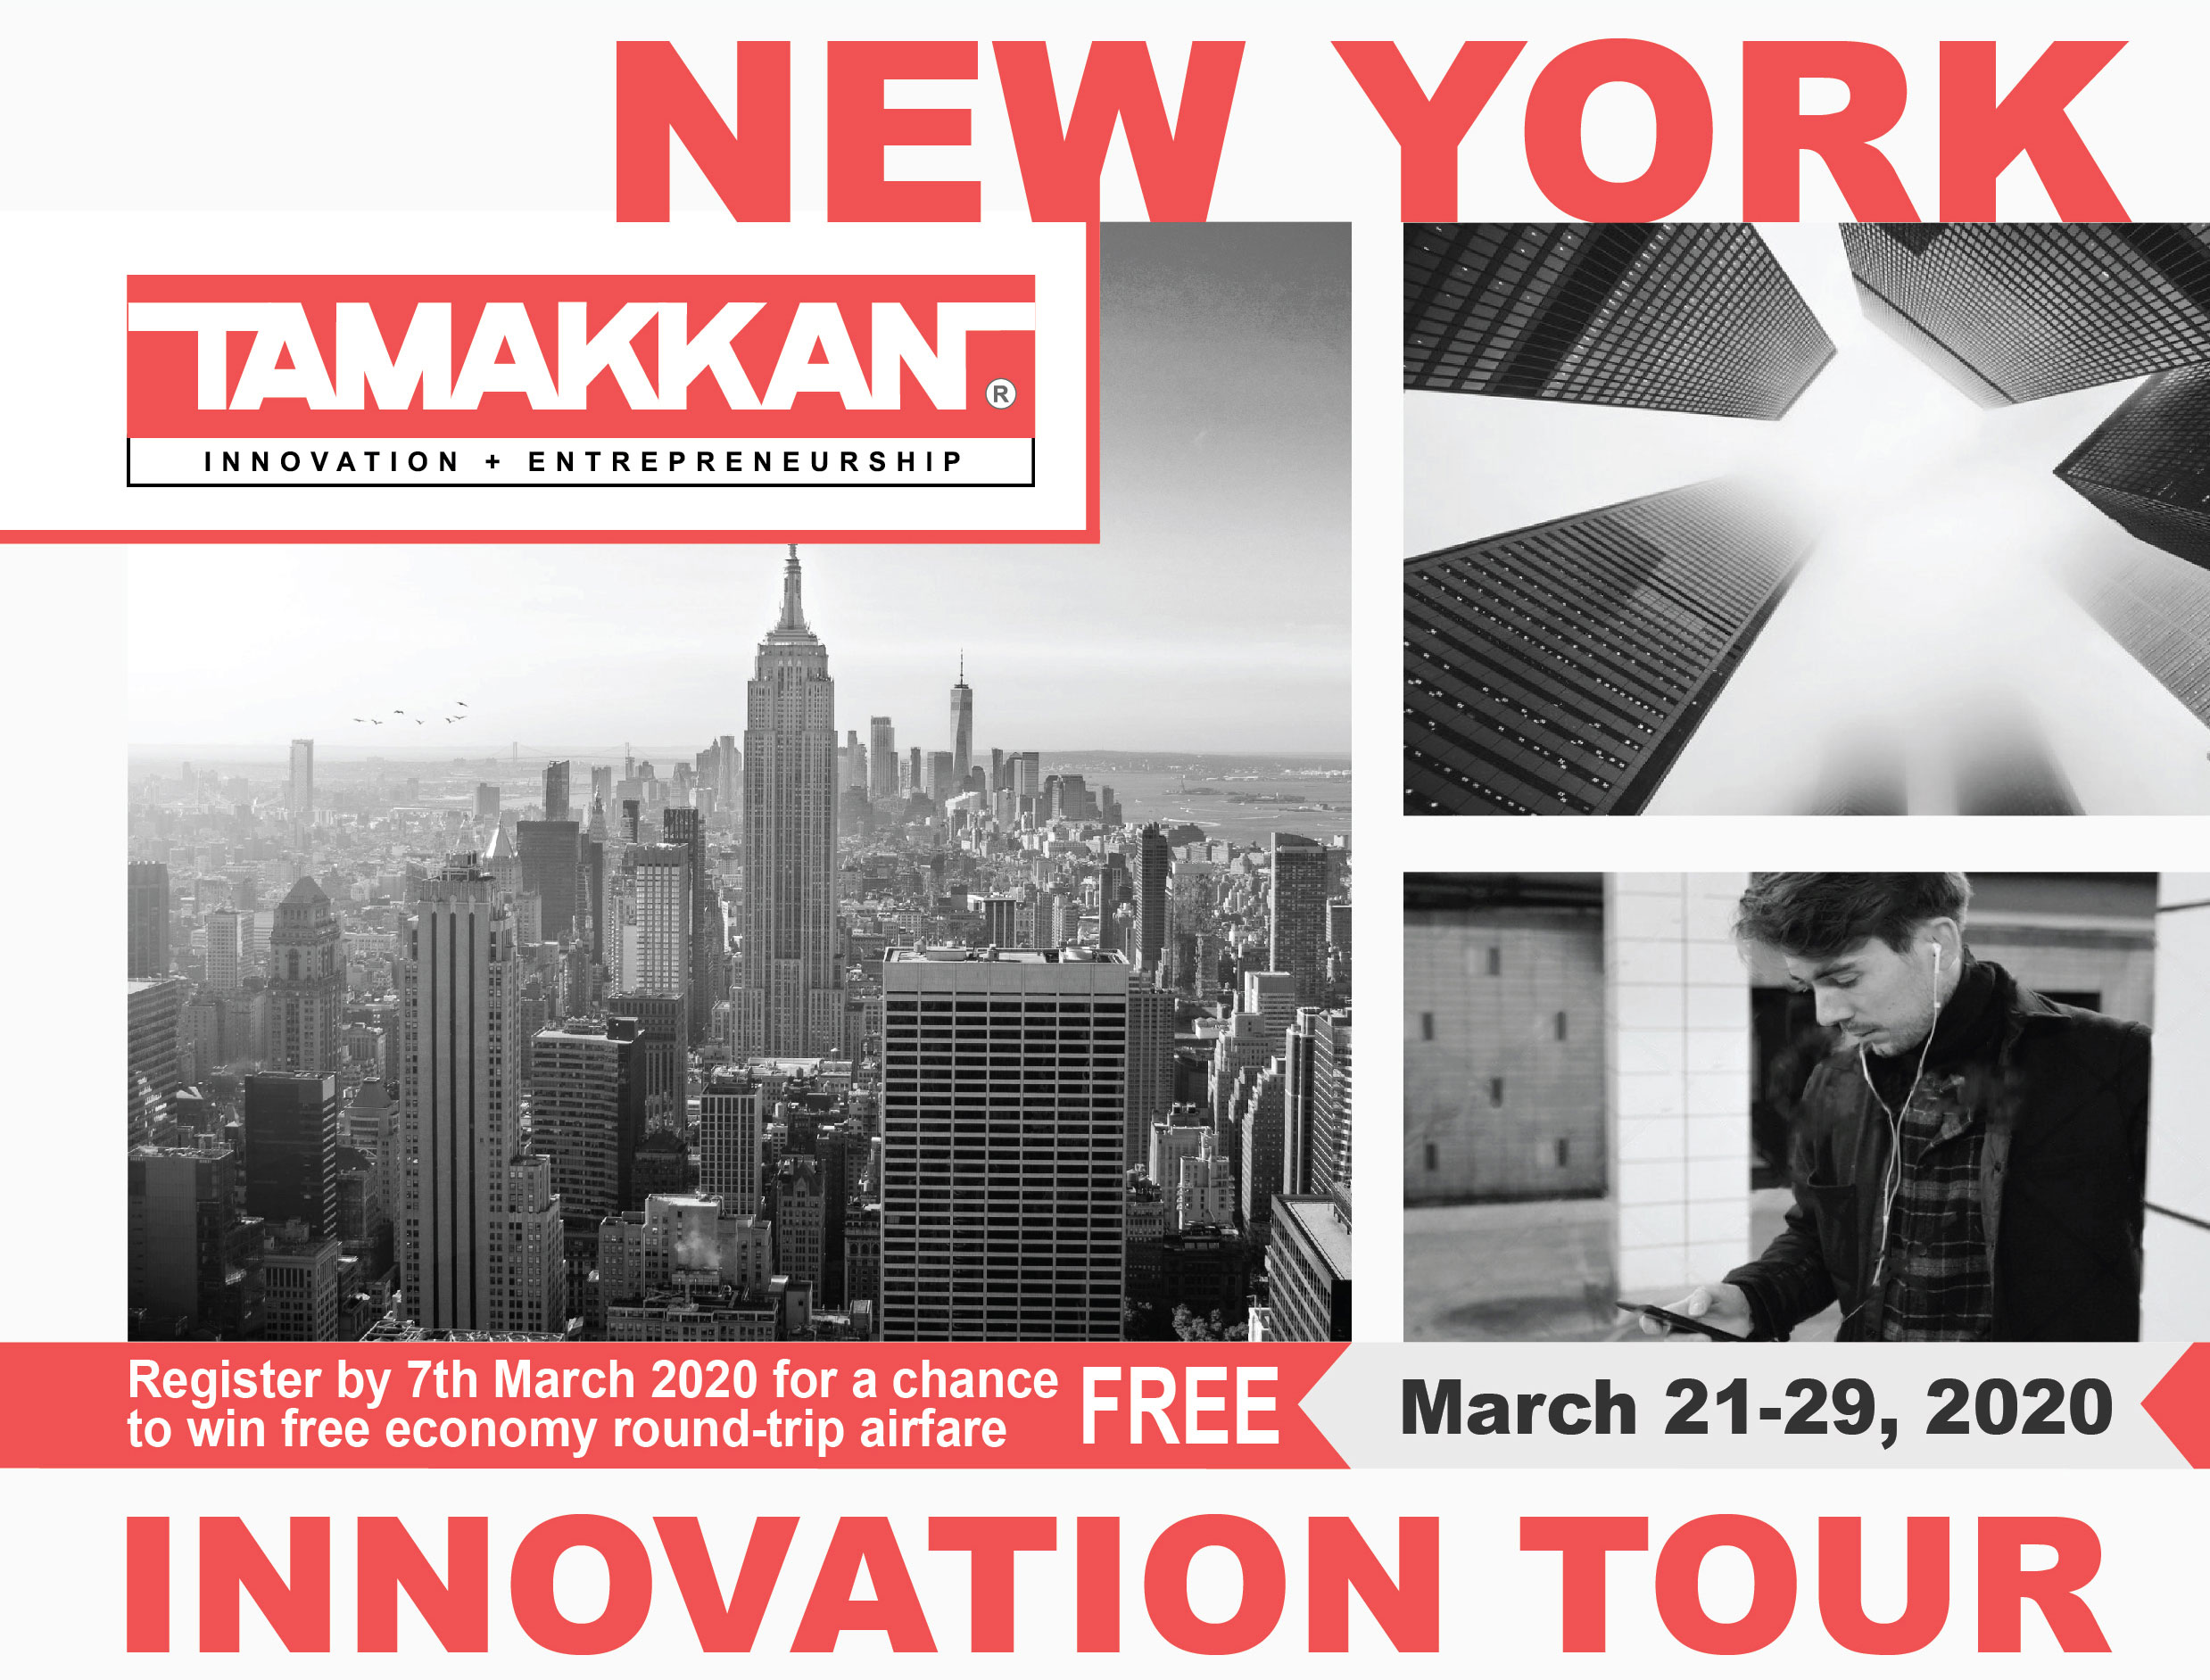 Tamakkan Tour in New York